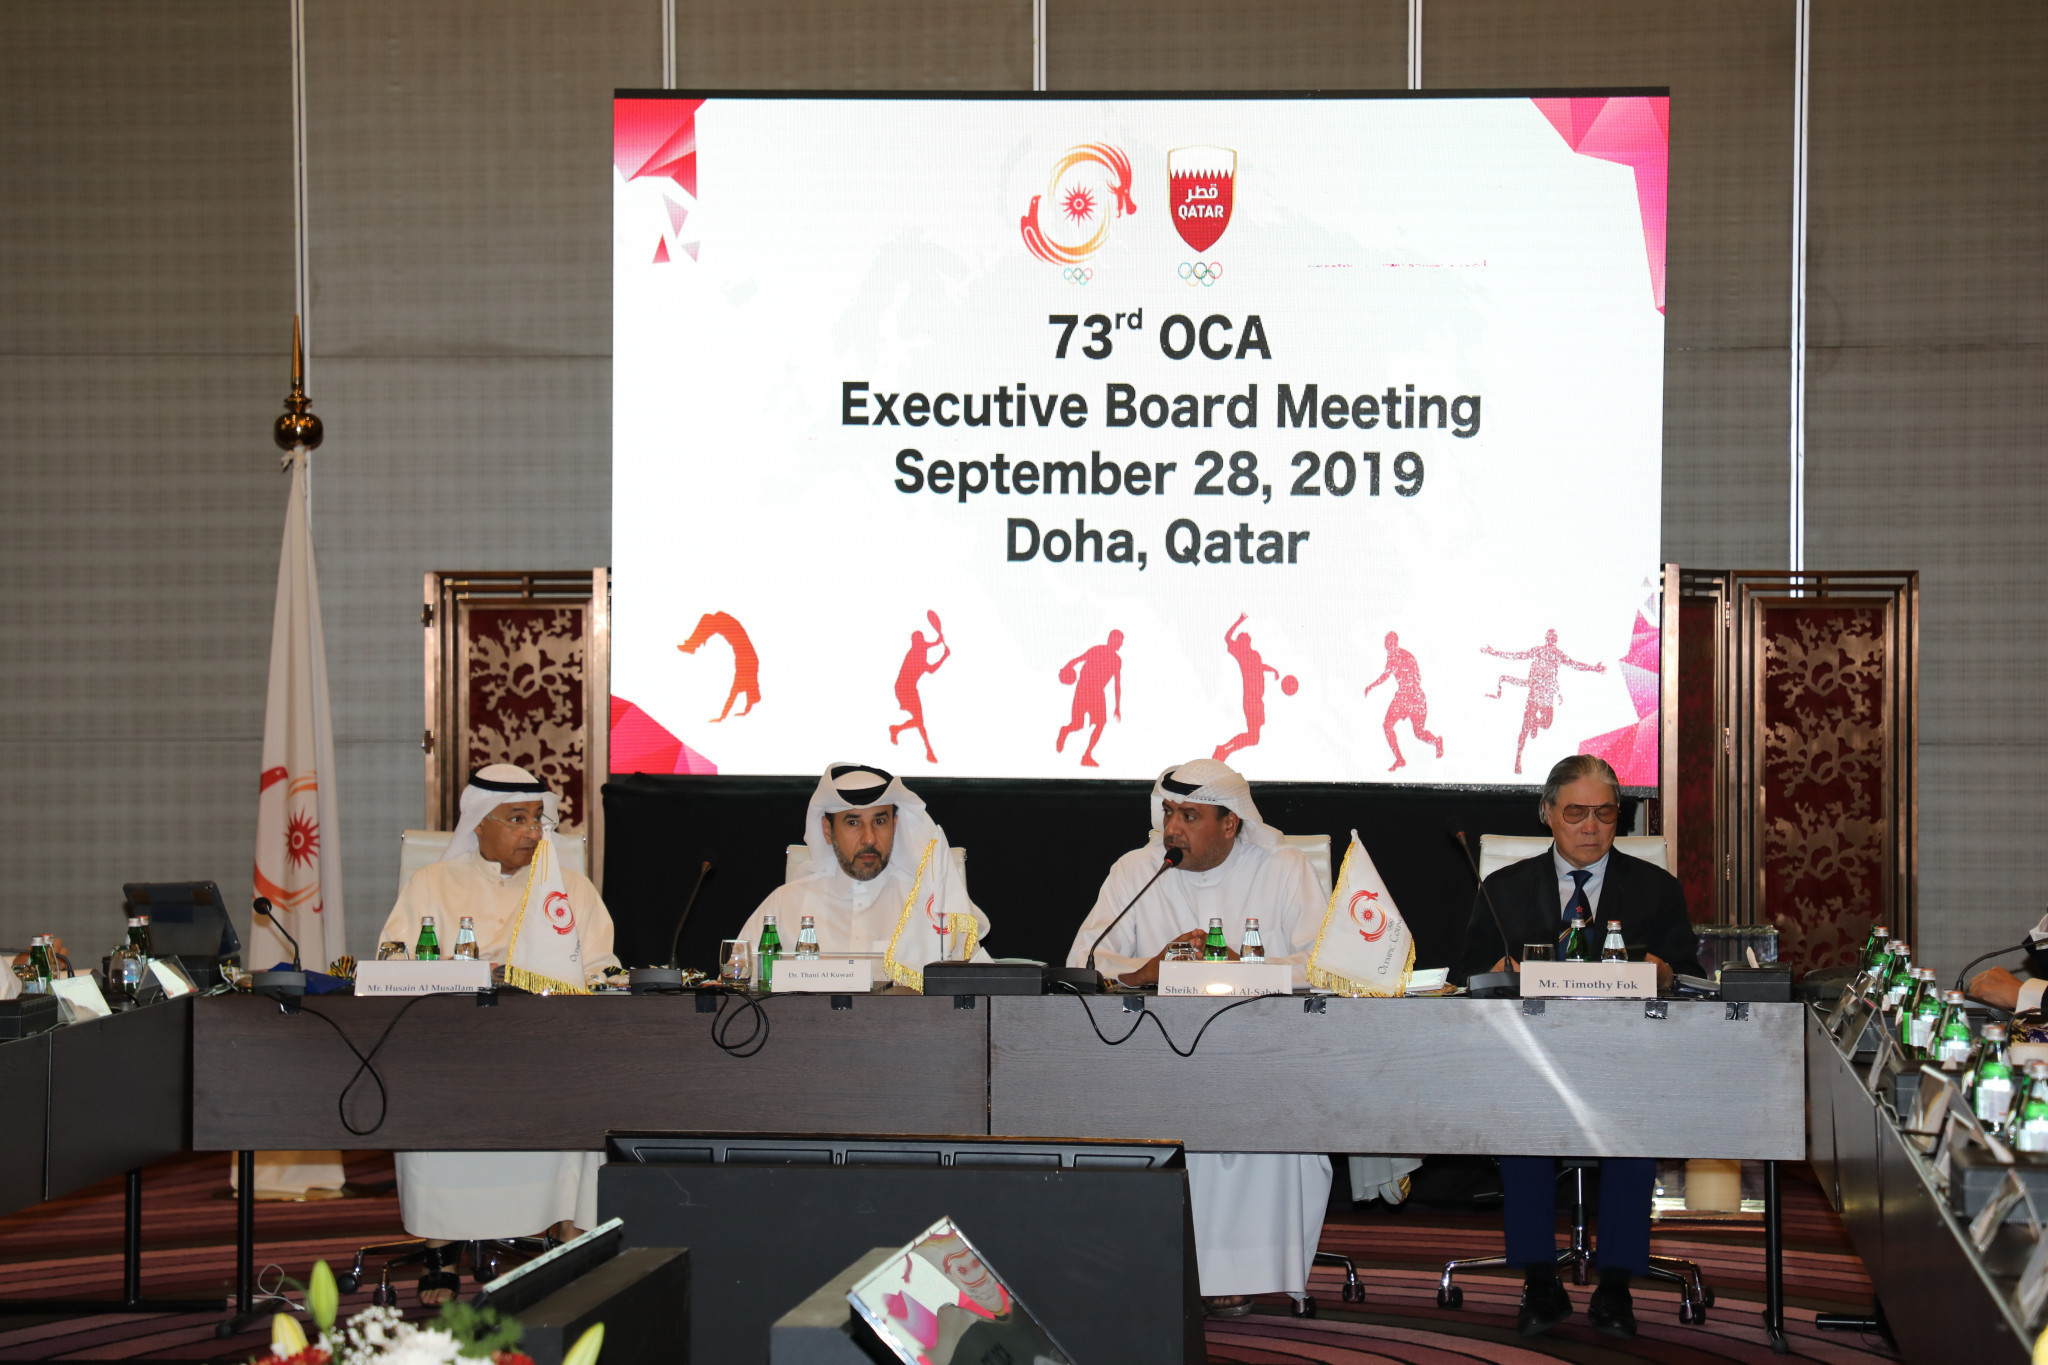 The OCA awarded the 2025 Asian Youth Games to Tashkent in 2019 ©OCA